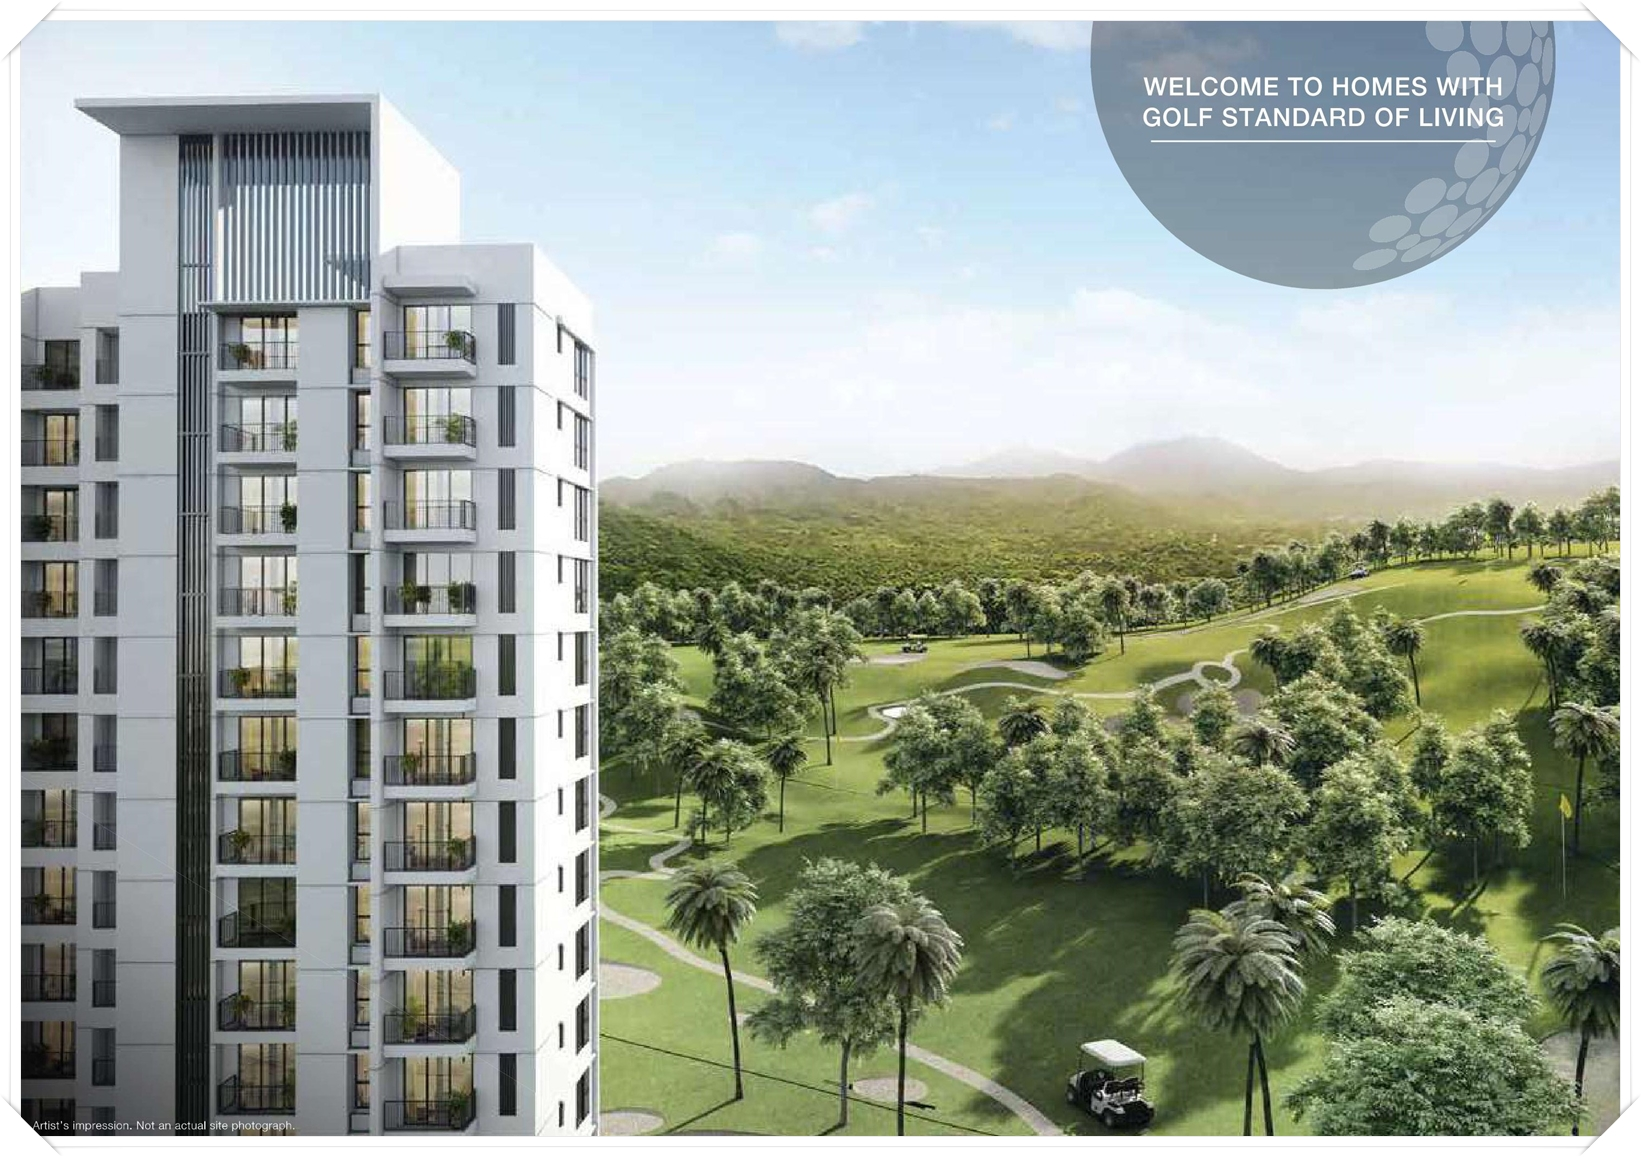 Is godrej city panvel a good investment dream builder investments complaints about at&t